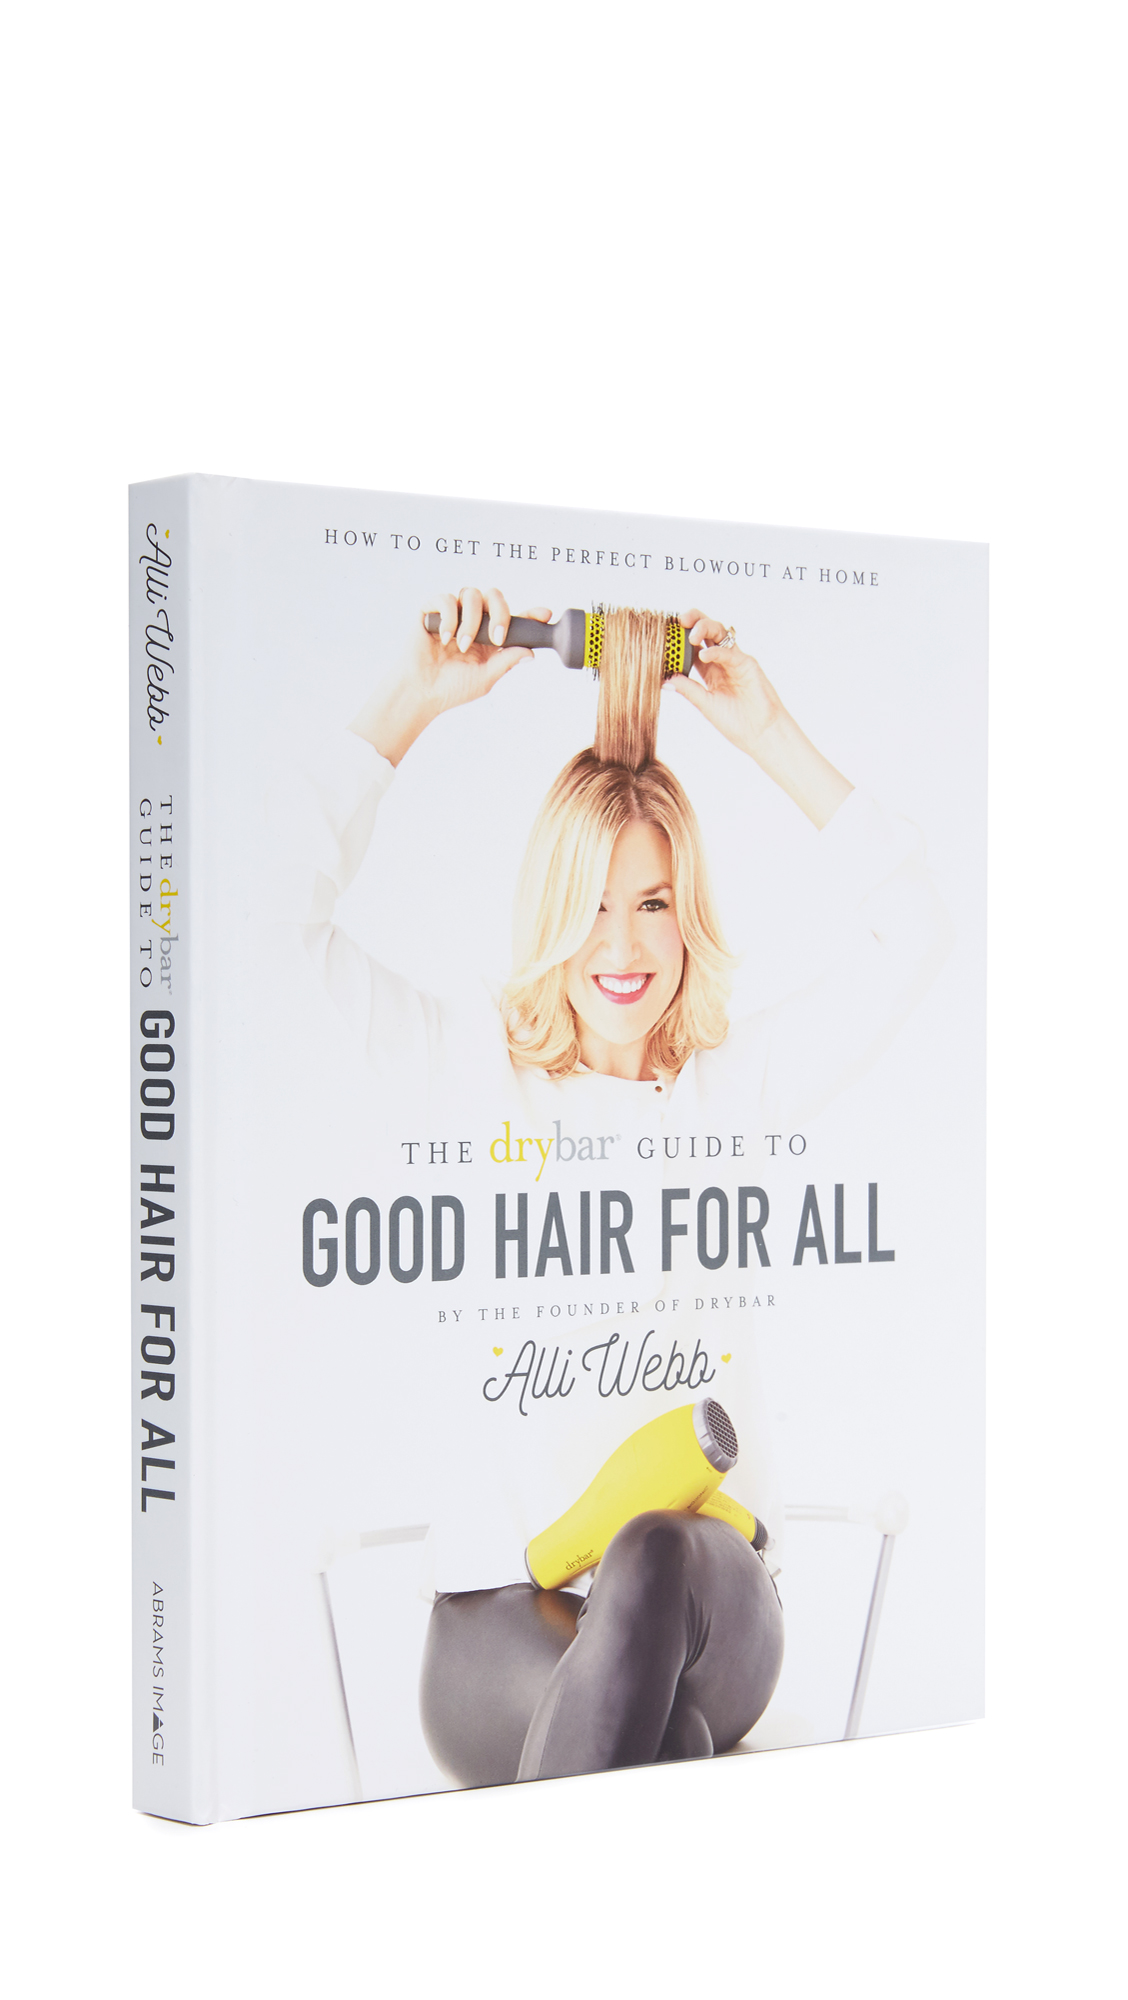 Books With Style The Drybar Guide To Good Hair - No Color at Shopbop